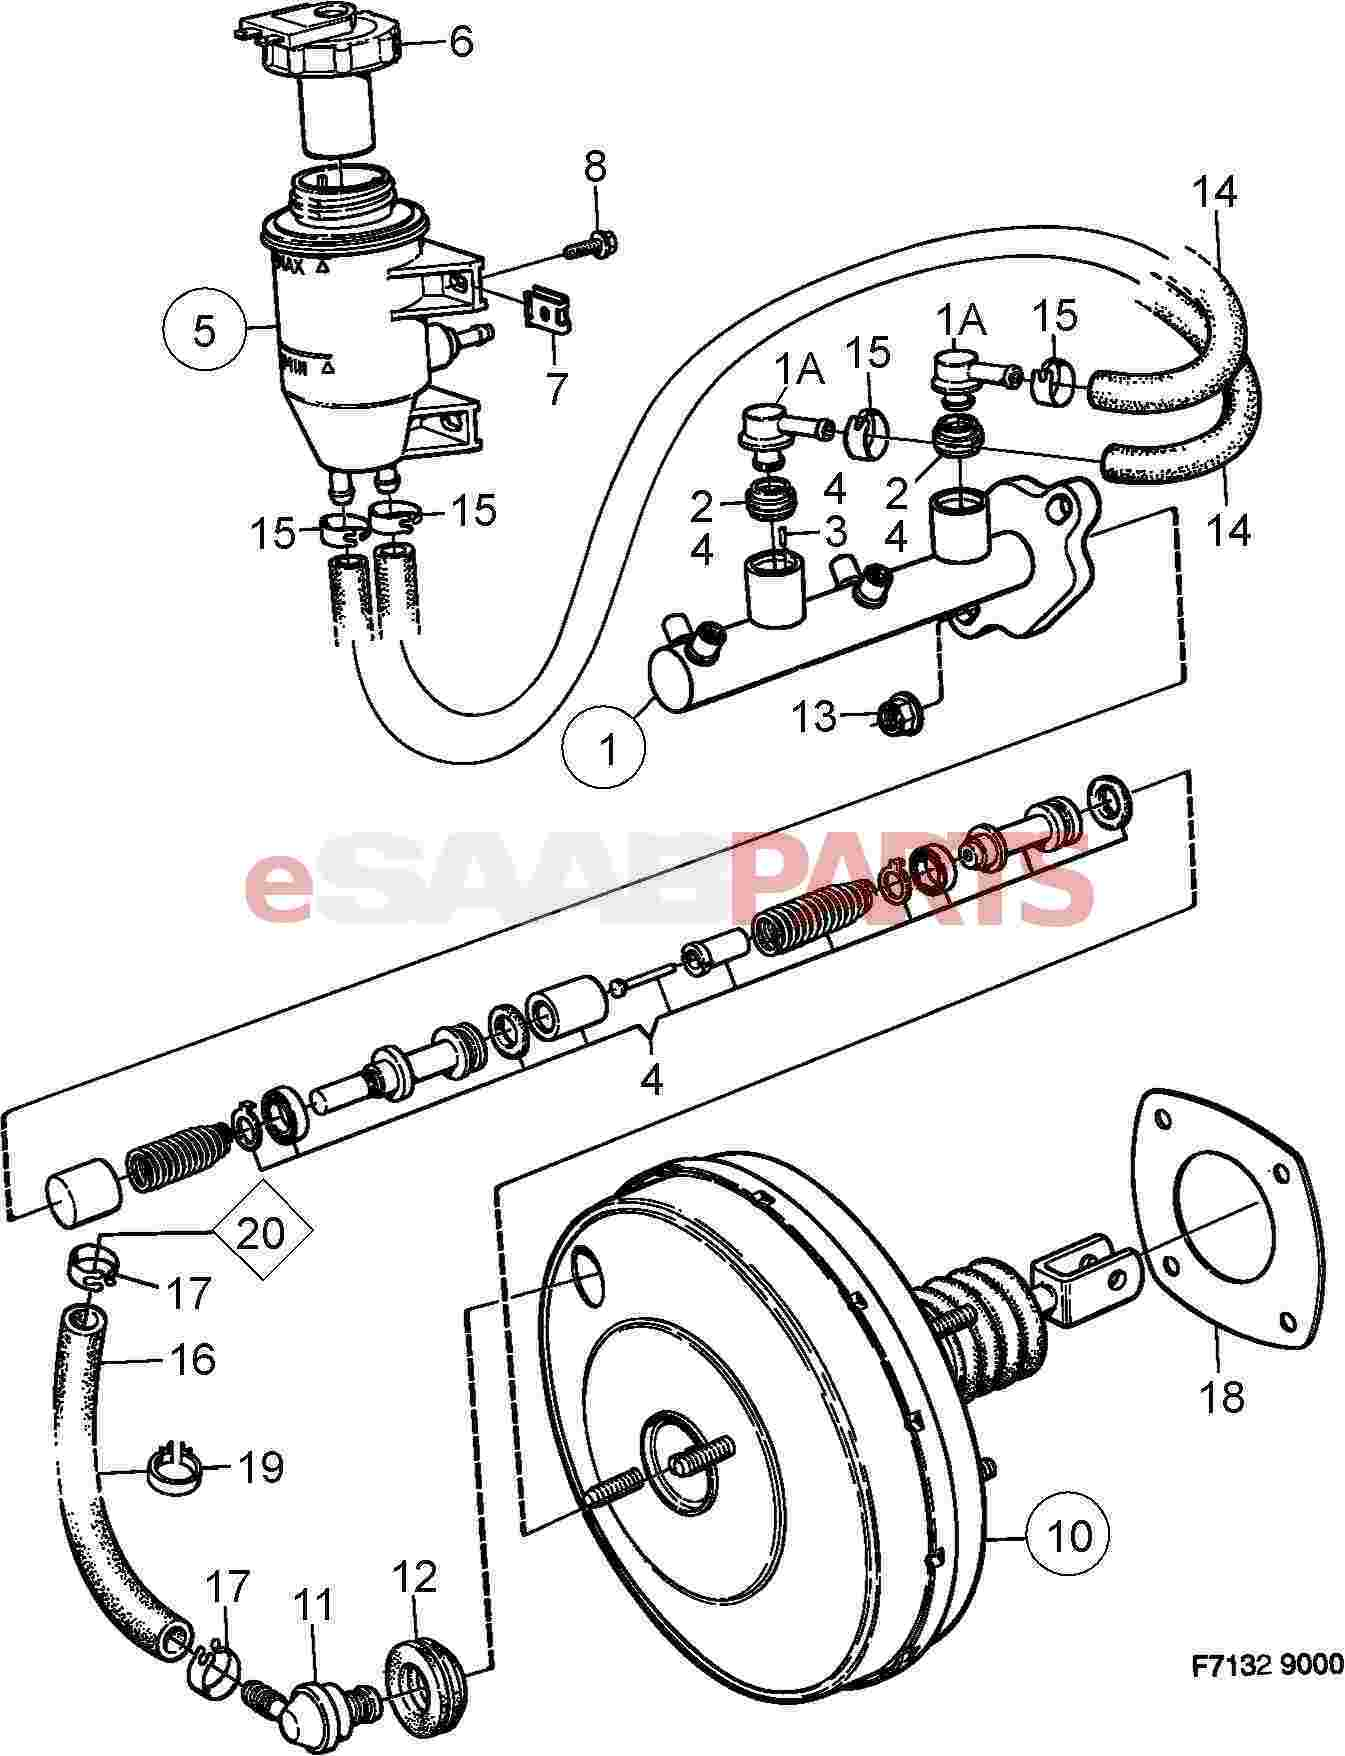 28386 Radio Wiring Diagram For A Saturn Ion on